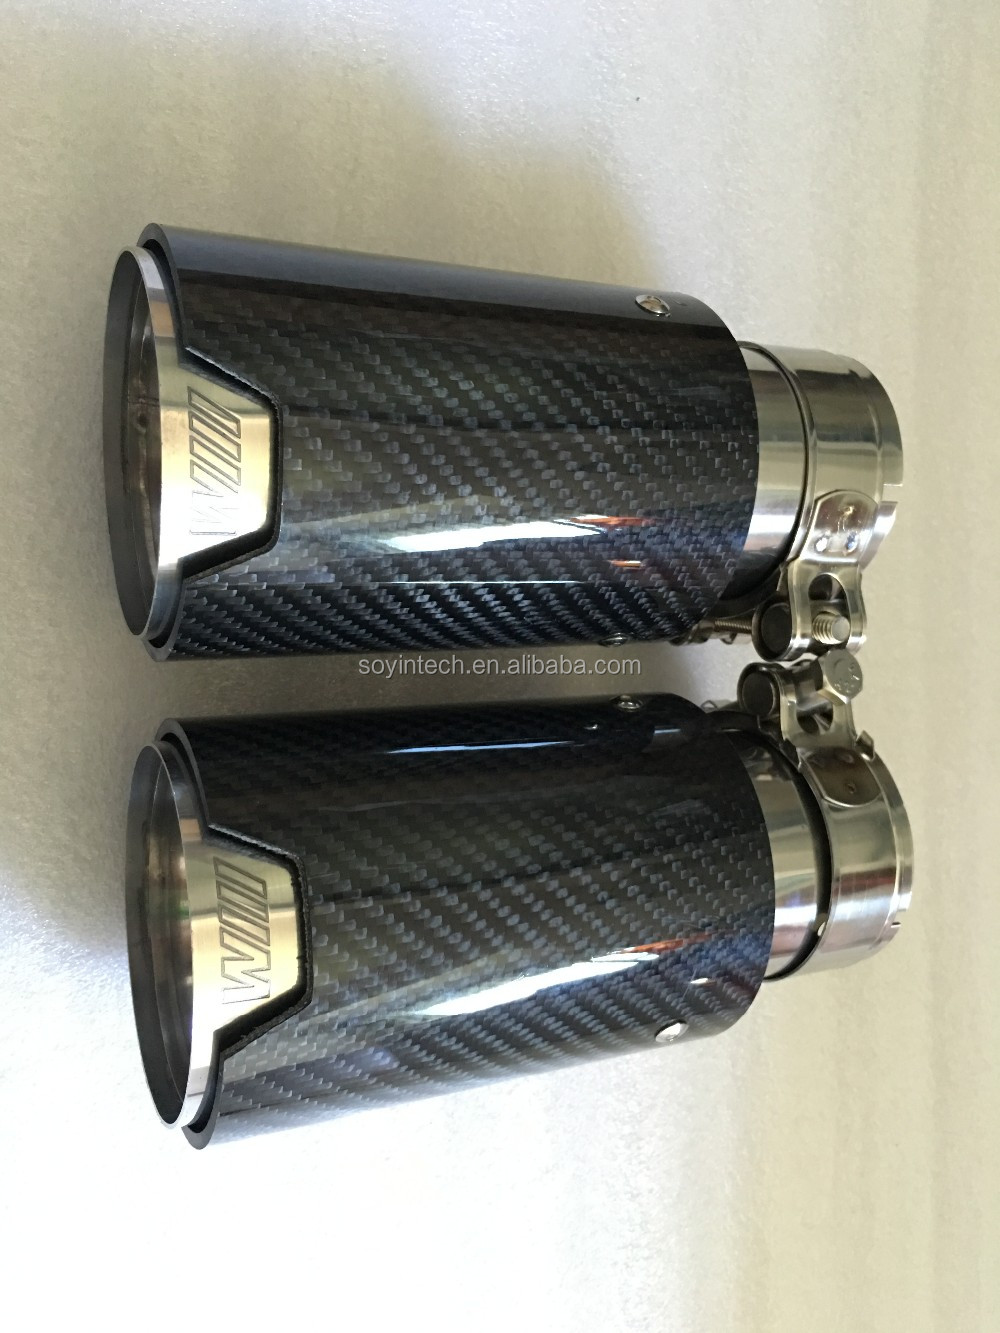 Top Quality Car Carbon Fiber Exhaust End Tips For Bmw Buy Exhaust Tips For Bmw Product On